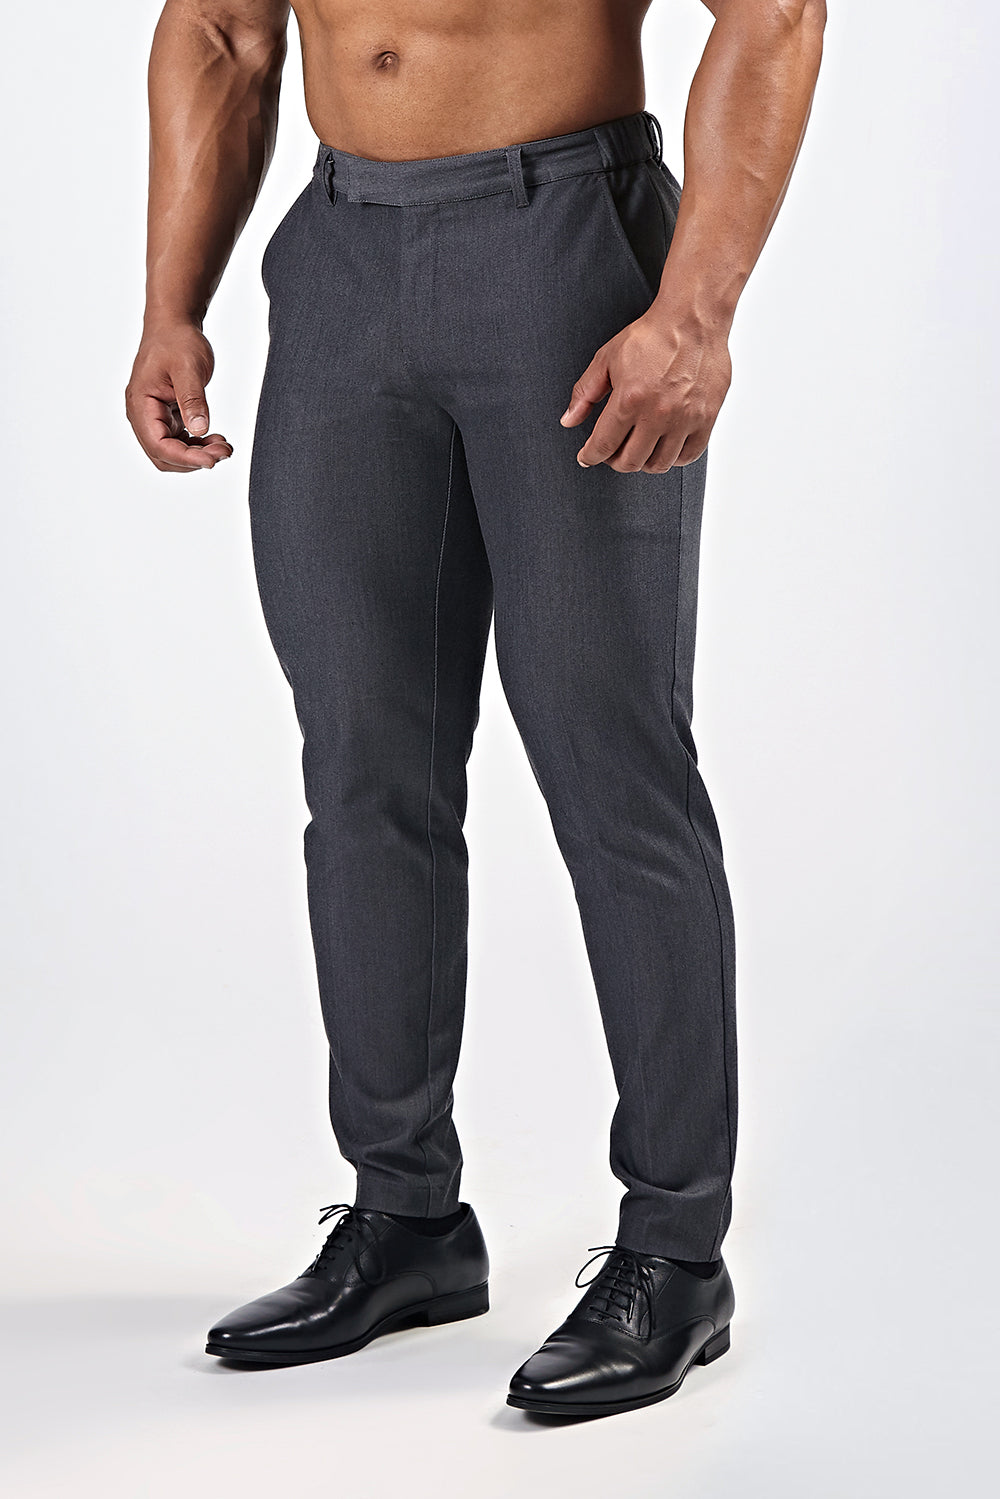 Essential Trousers in Charcoal